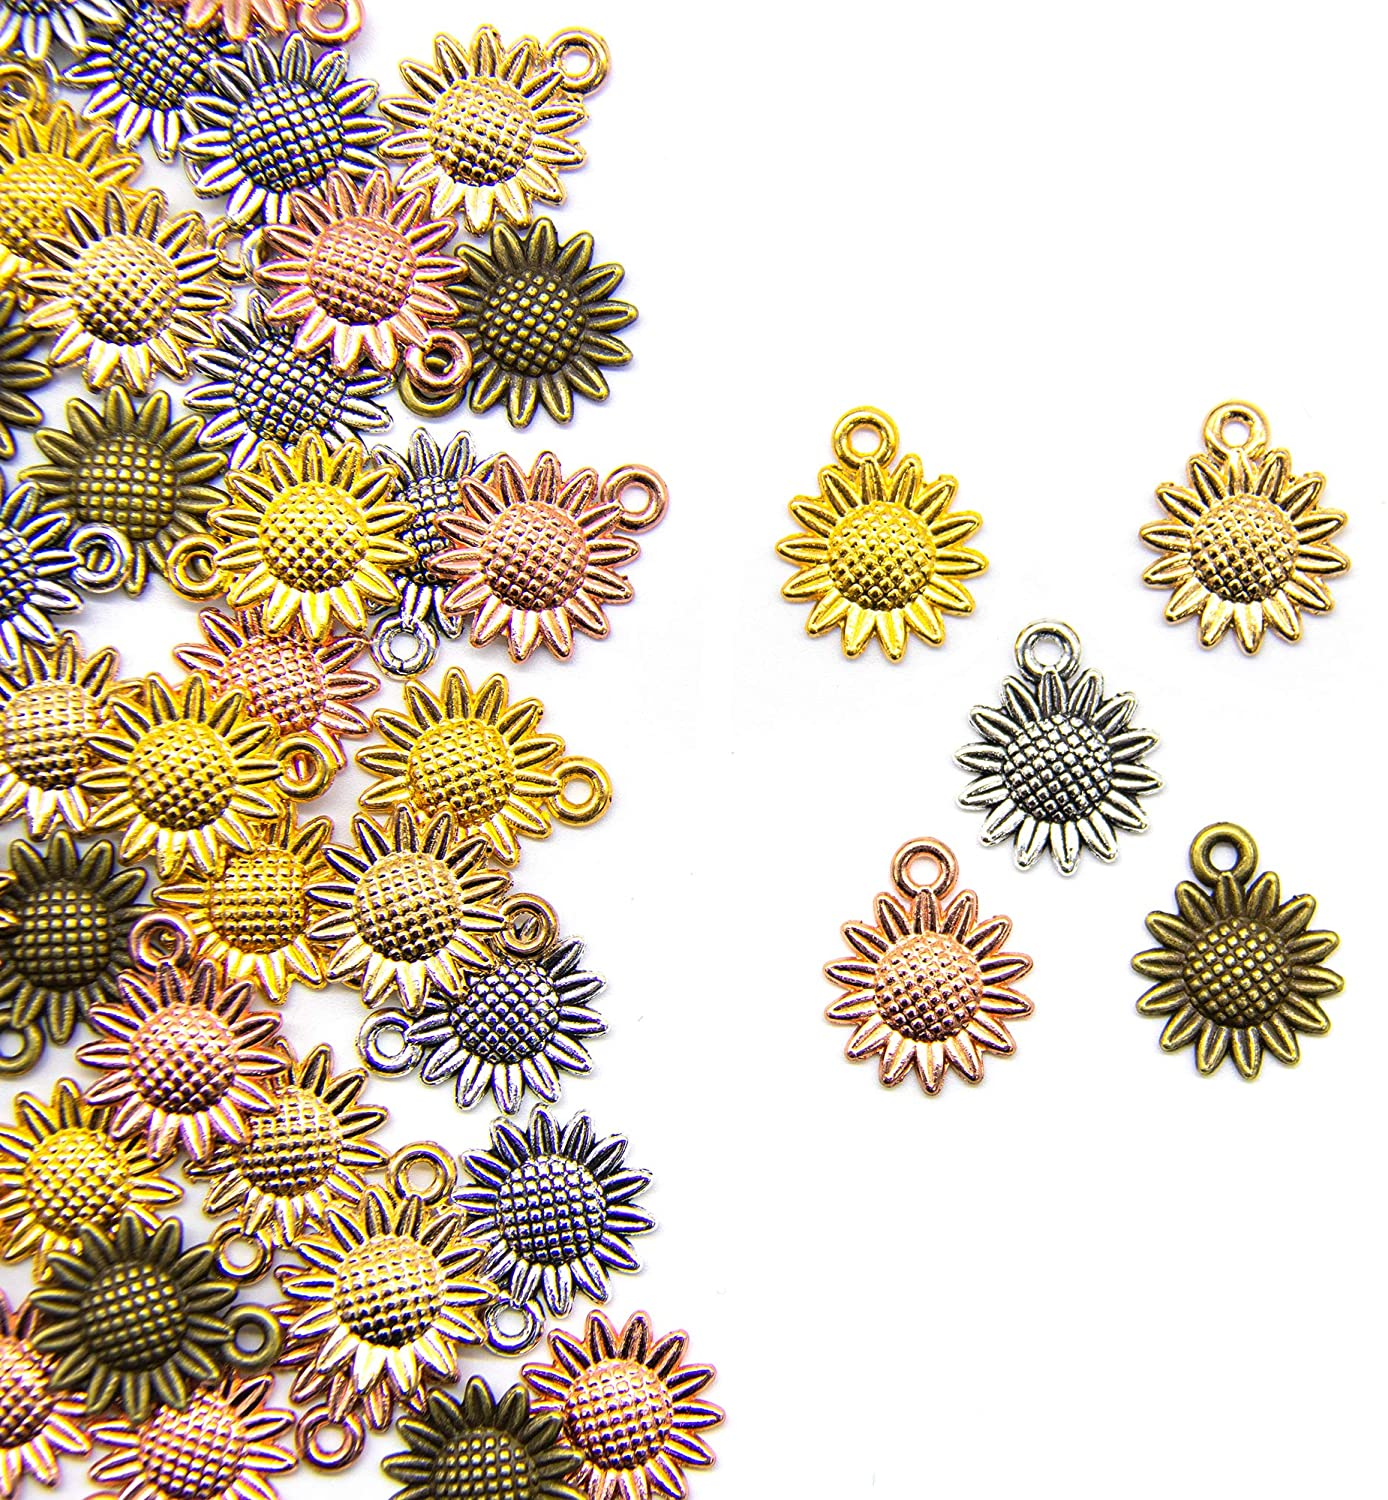 AUEAR, Set of 100 Sunflower Charms 5 Color Alloy Sunflower Pendant for Jewelry Making DIY Craft Bracelet Necklace Earring